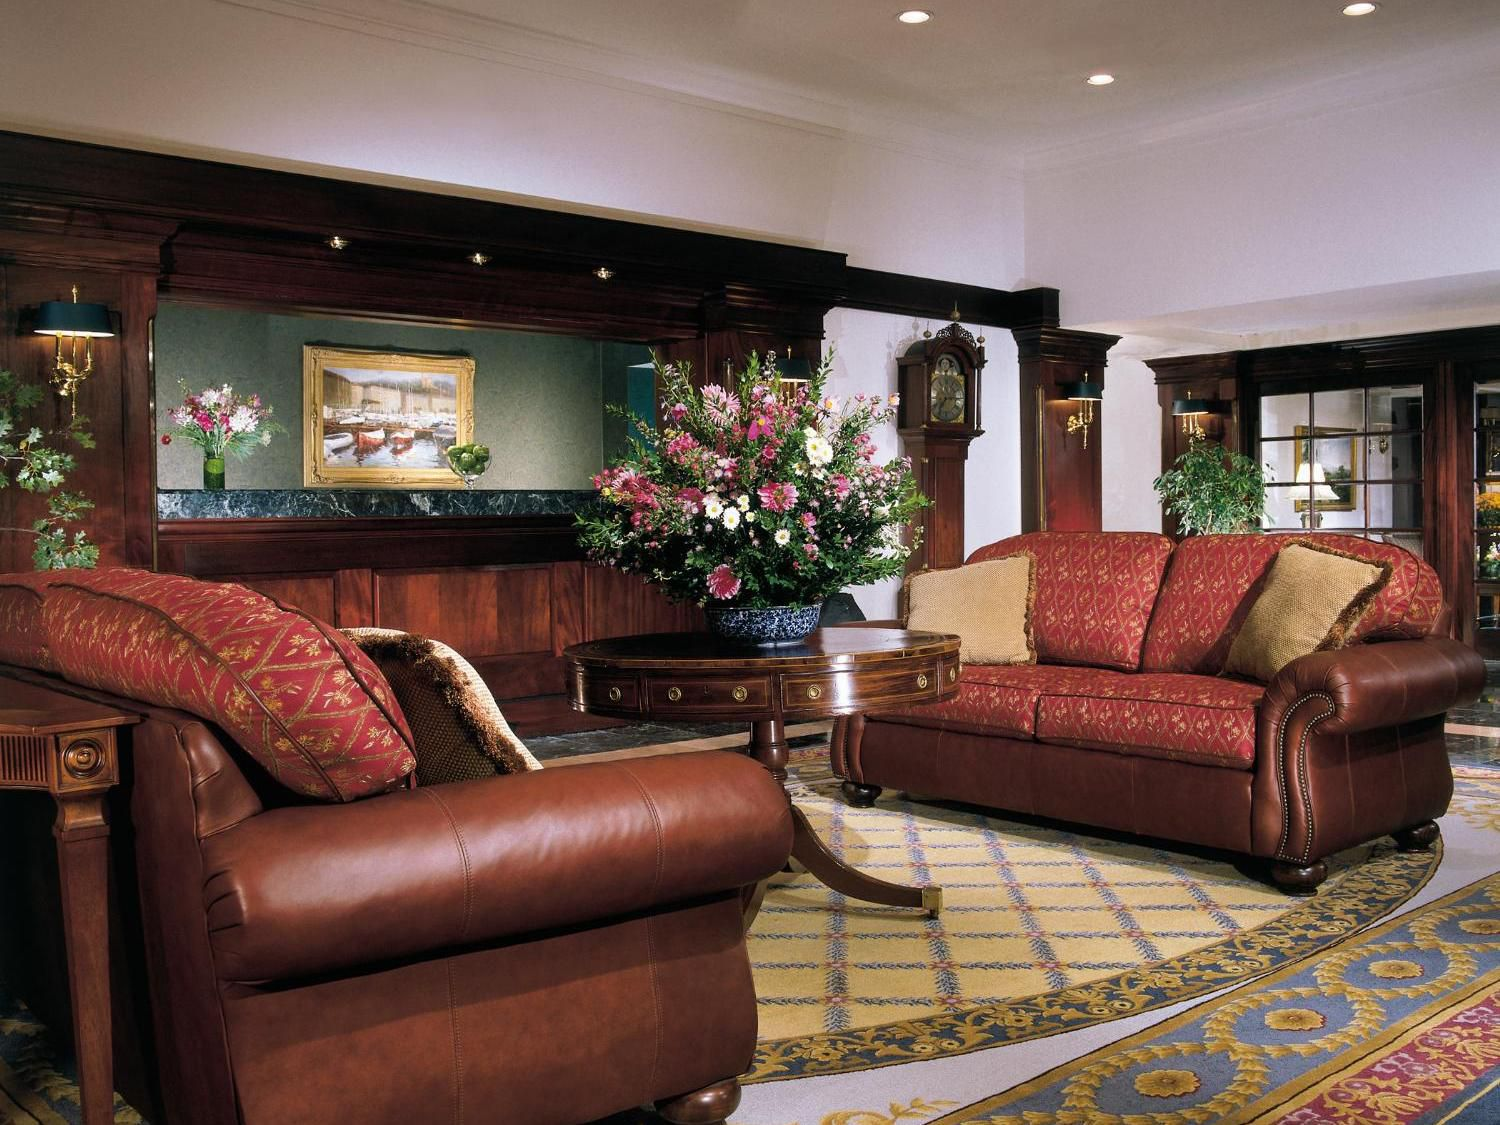 Welcome to the warm and inviting Holiday Inn Bar Harbors lobby